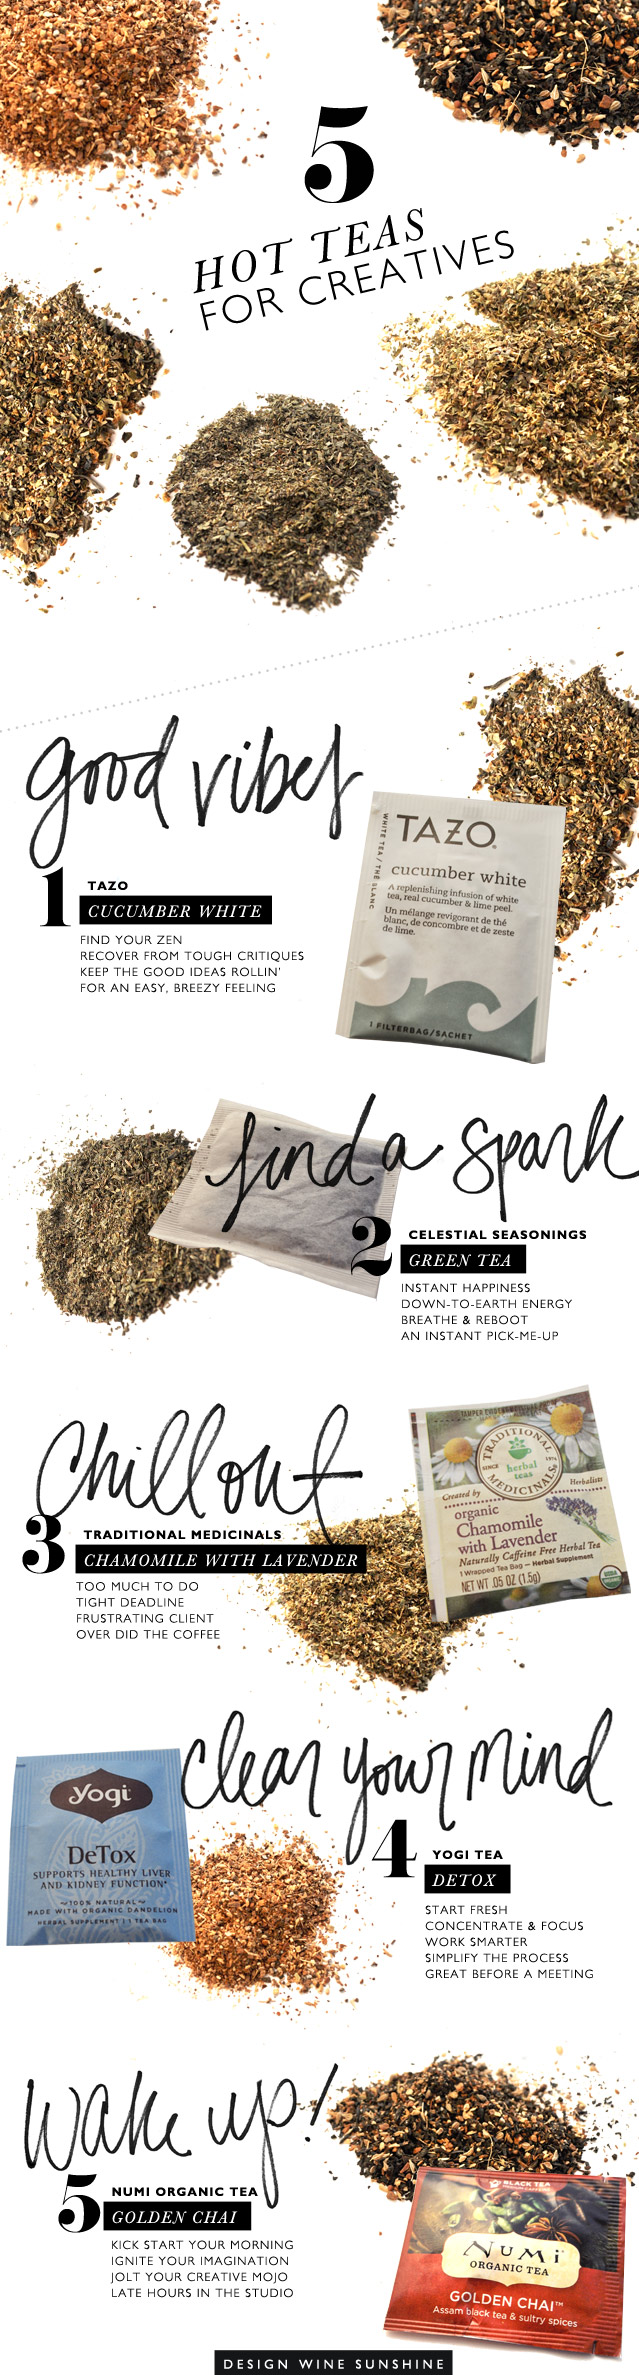 Design Wine Sunshine | 5 Fave Hot Teas for Creatives, Artists, Designers